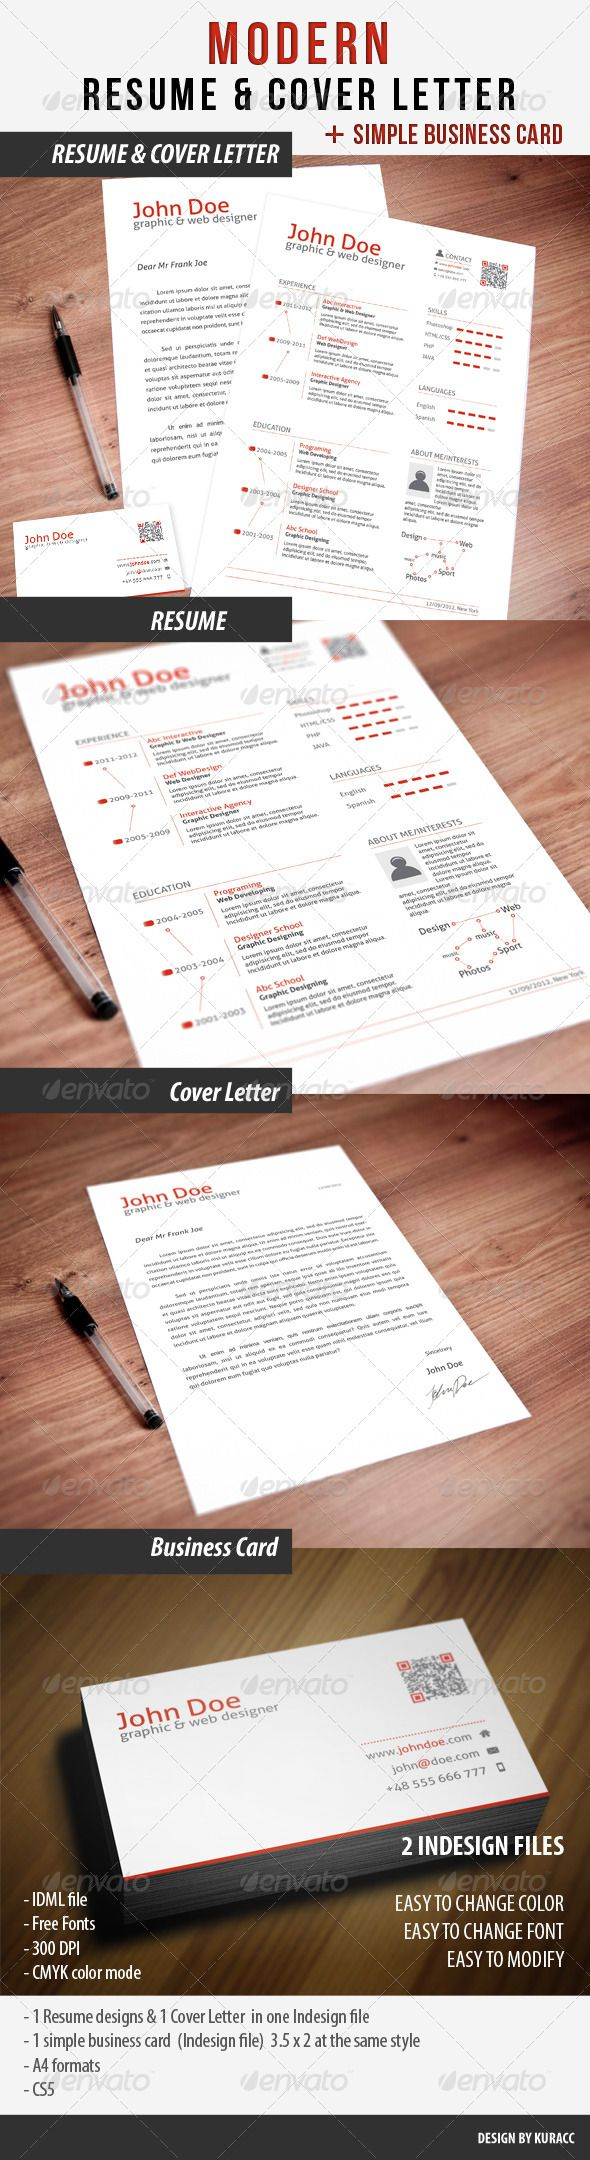 Clean Resume u0026 Cover Letter u0026 Business